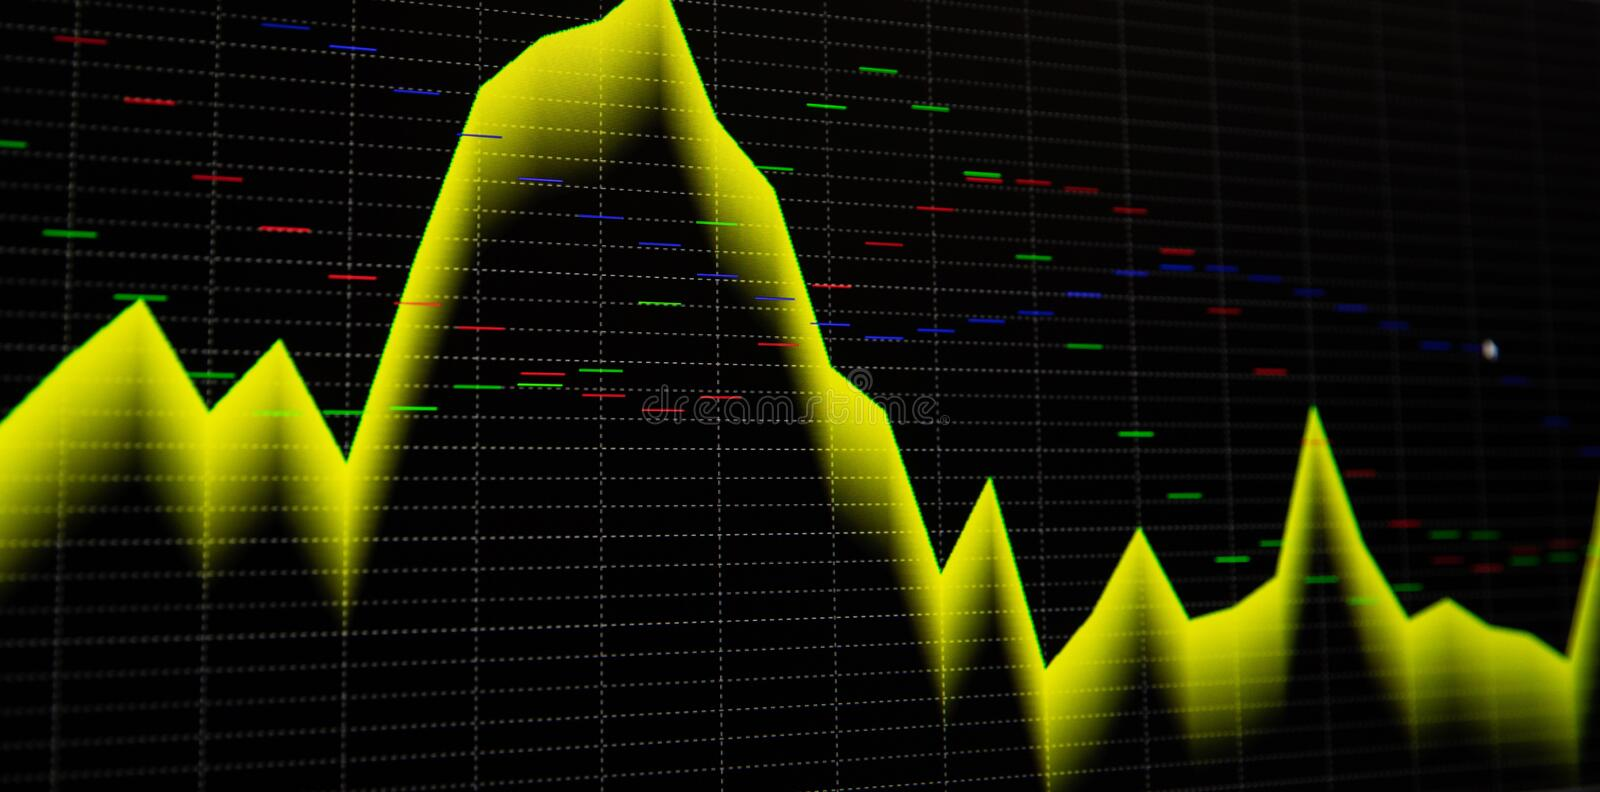 Stock market graph and bar chart price display. Display of quotes pricing graph visualization. Abstract financial background trade royalty free illustration